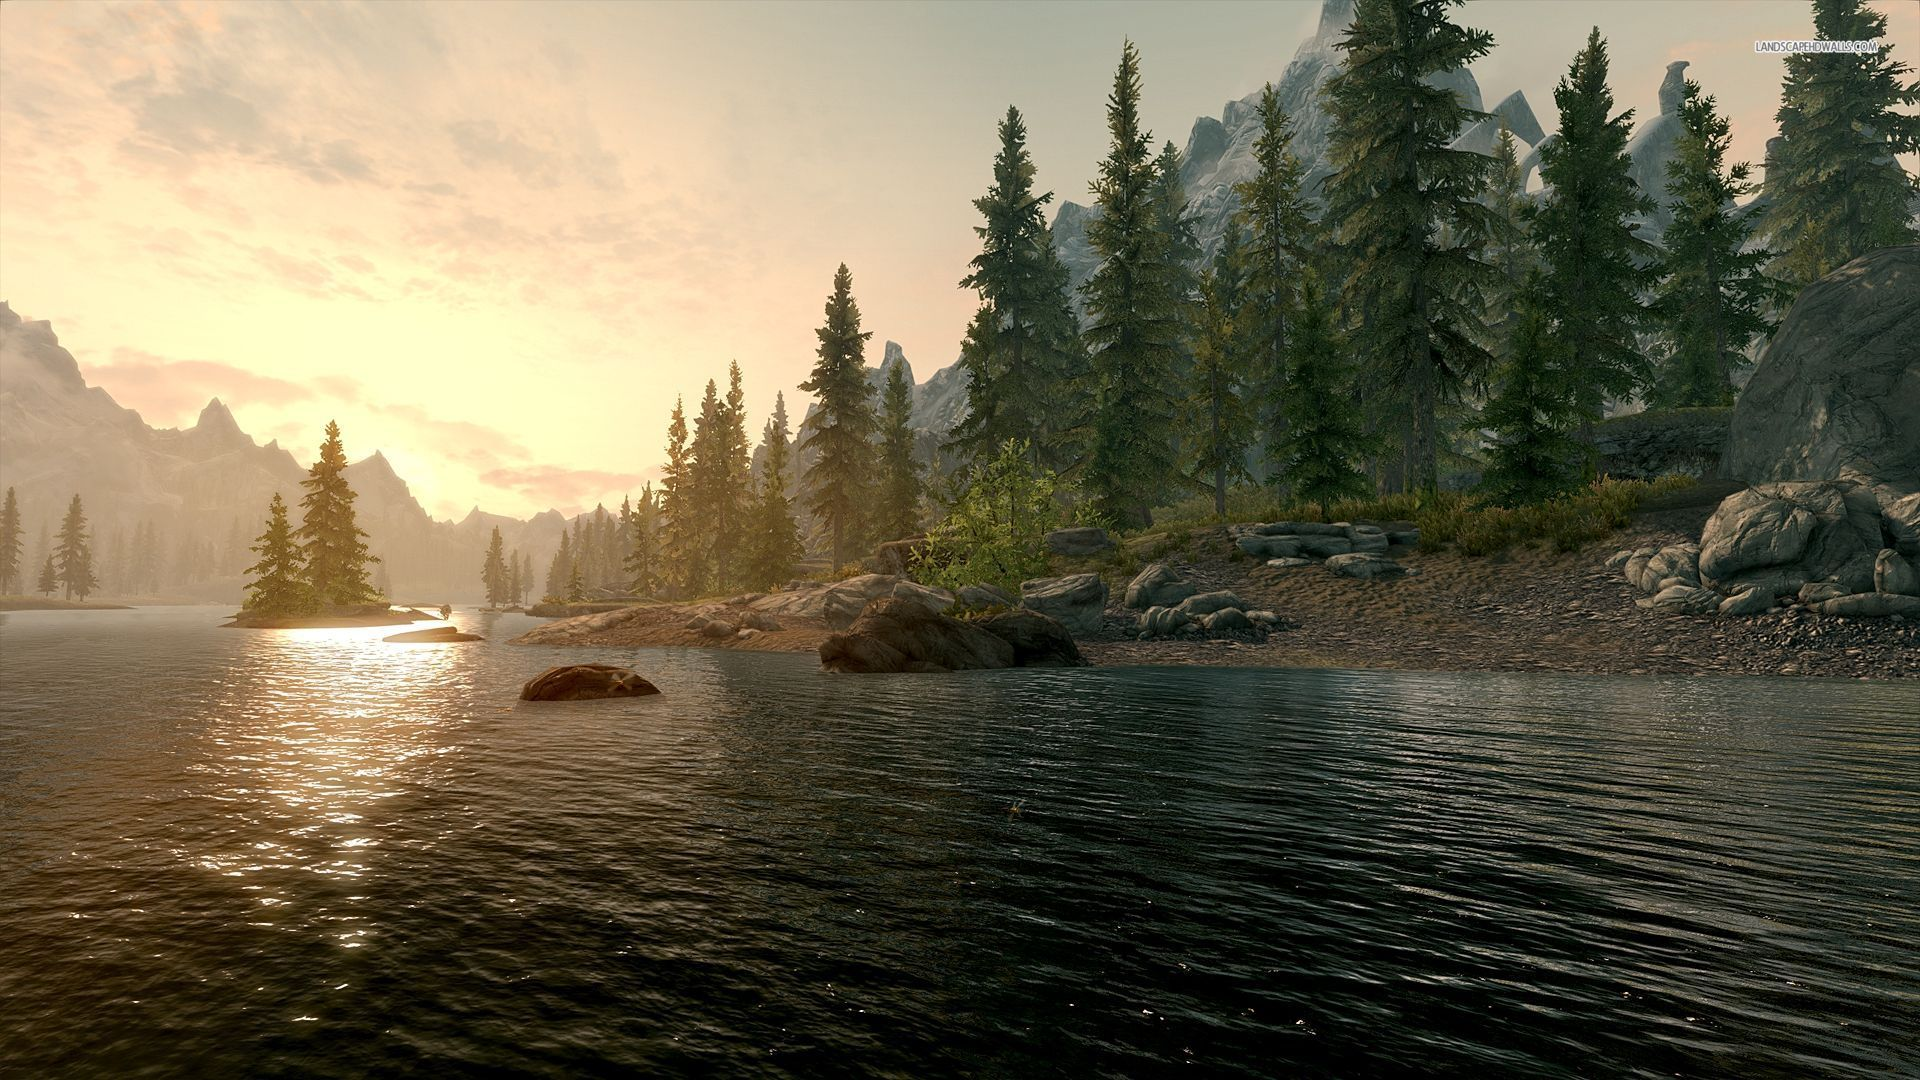 1920x1080 Deep River Shore Trees Sunset Desktop Pc And Mac Wallpaper